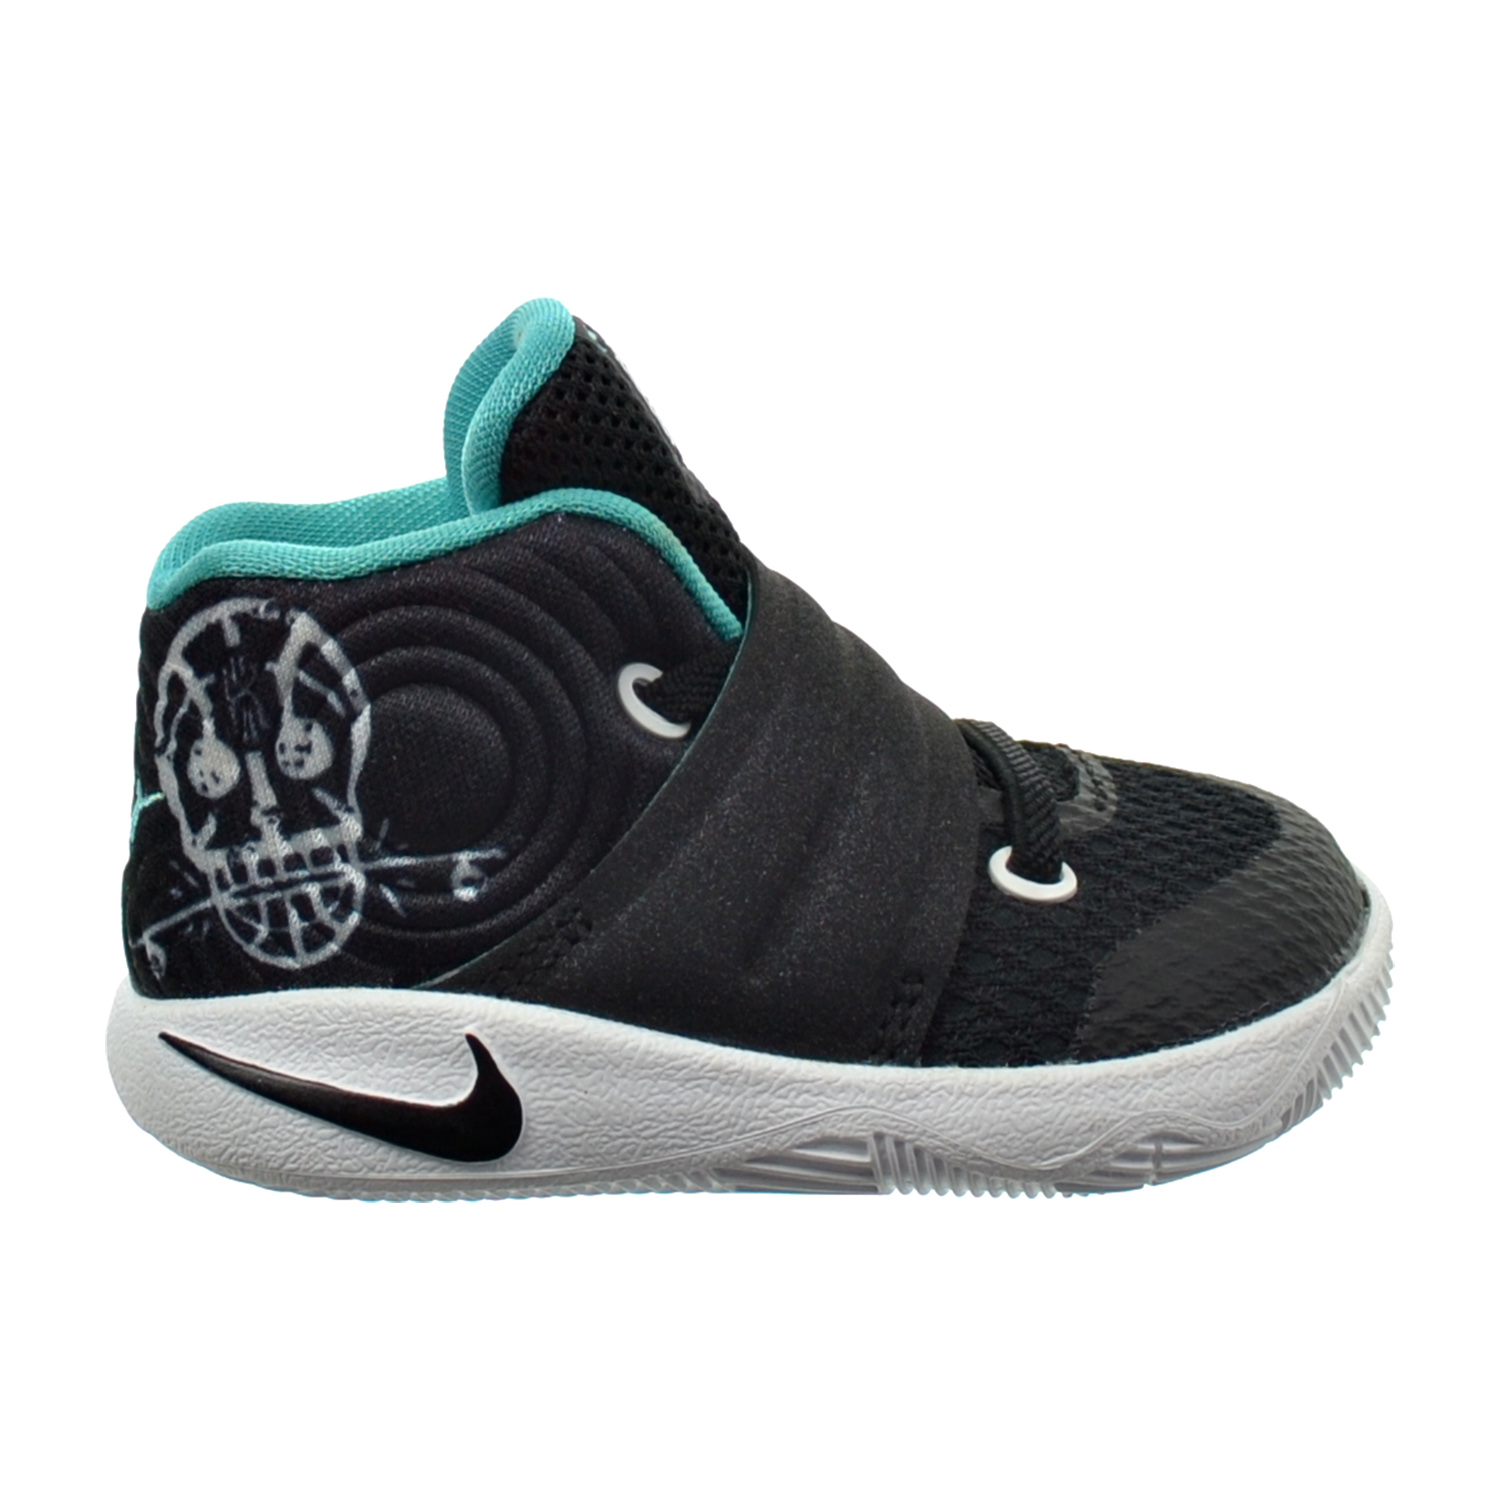 best sneakers 45062 14832 ... greece nike kyrie 2 td toddlers shoes black hyper jade white 827281 001  walmart cfa53 fe519